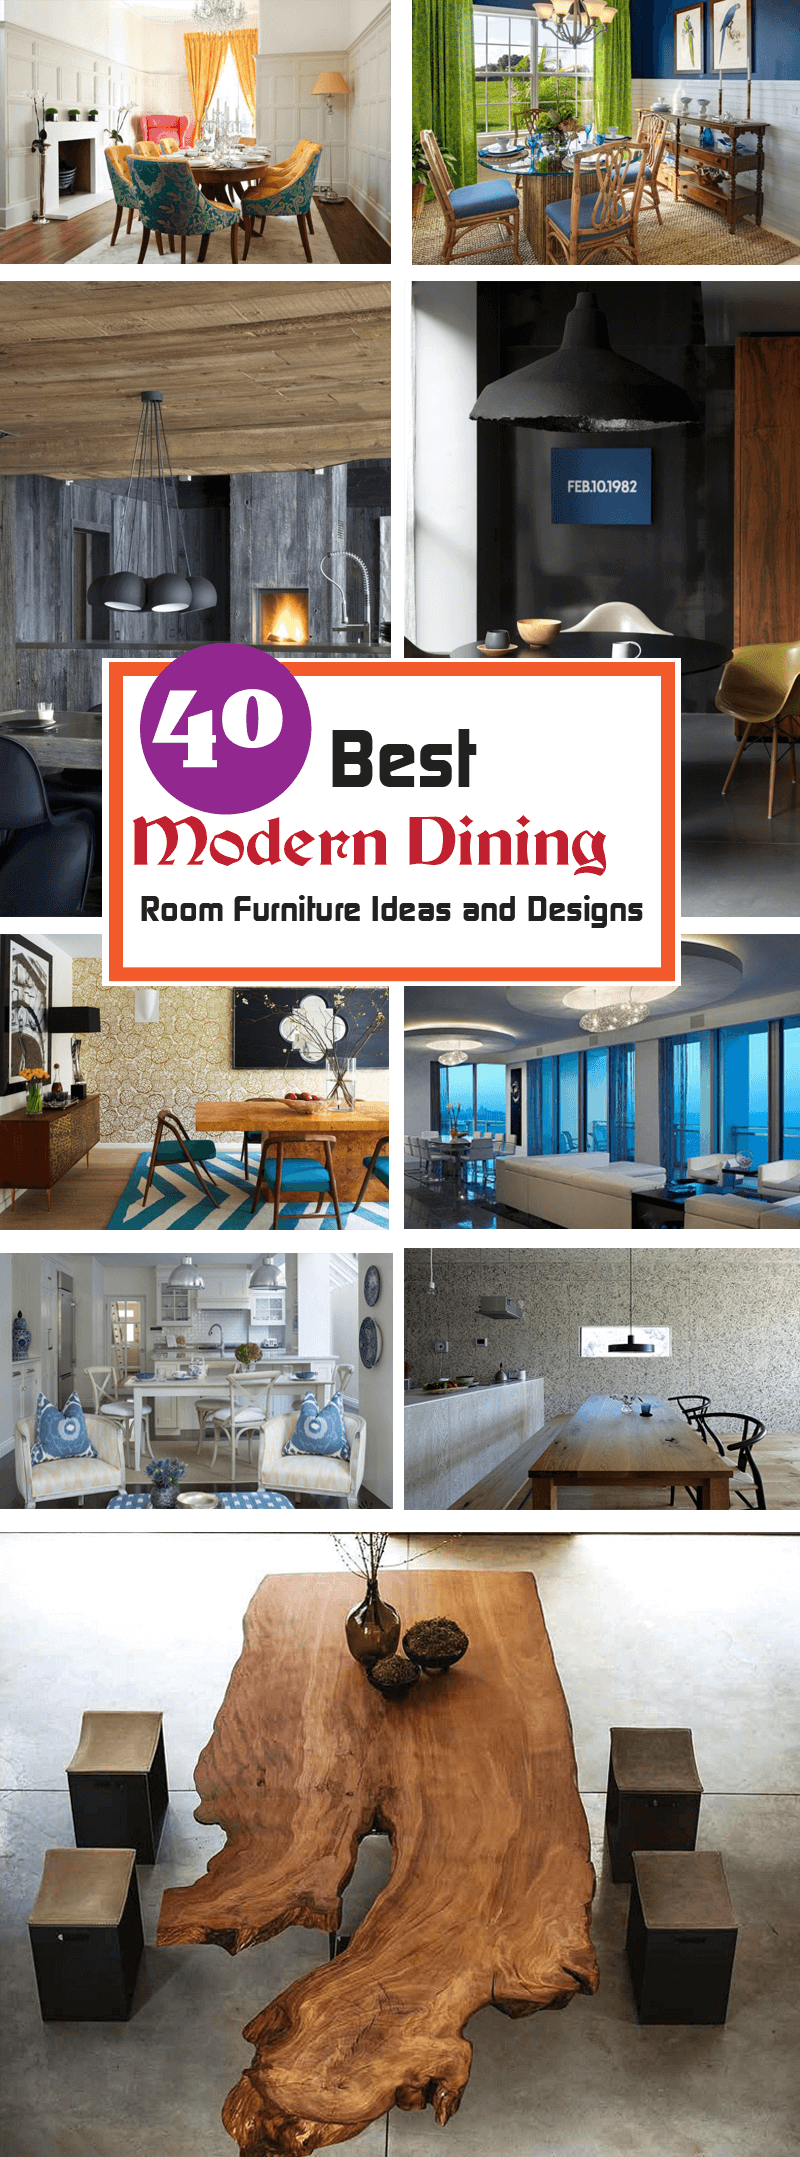 best Modern Dining Room Furniture ideas and designs